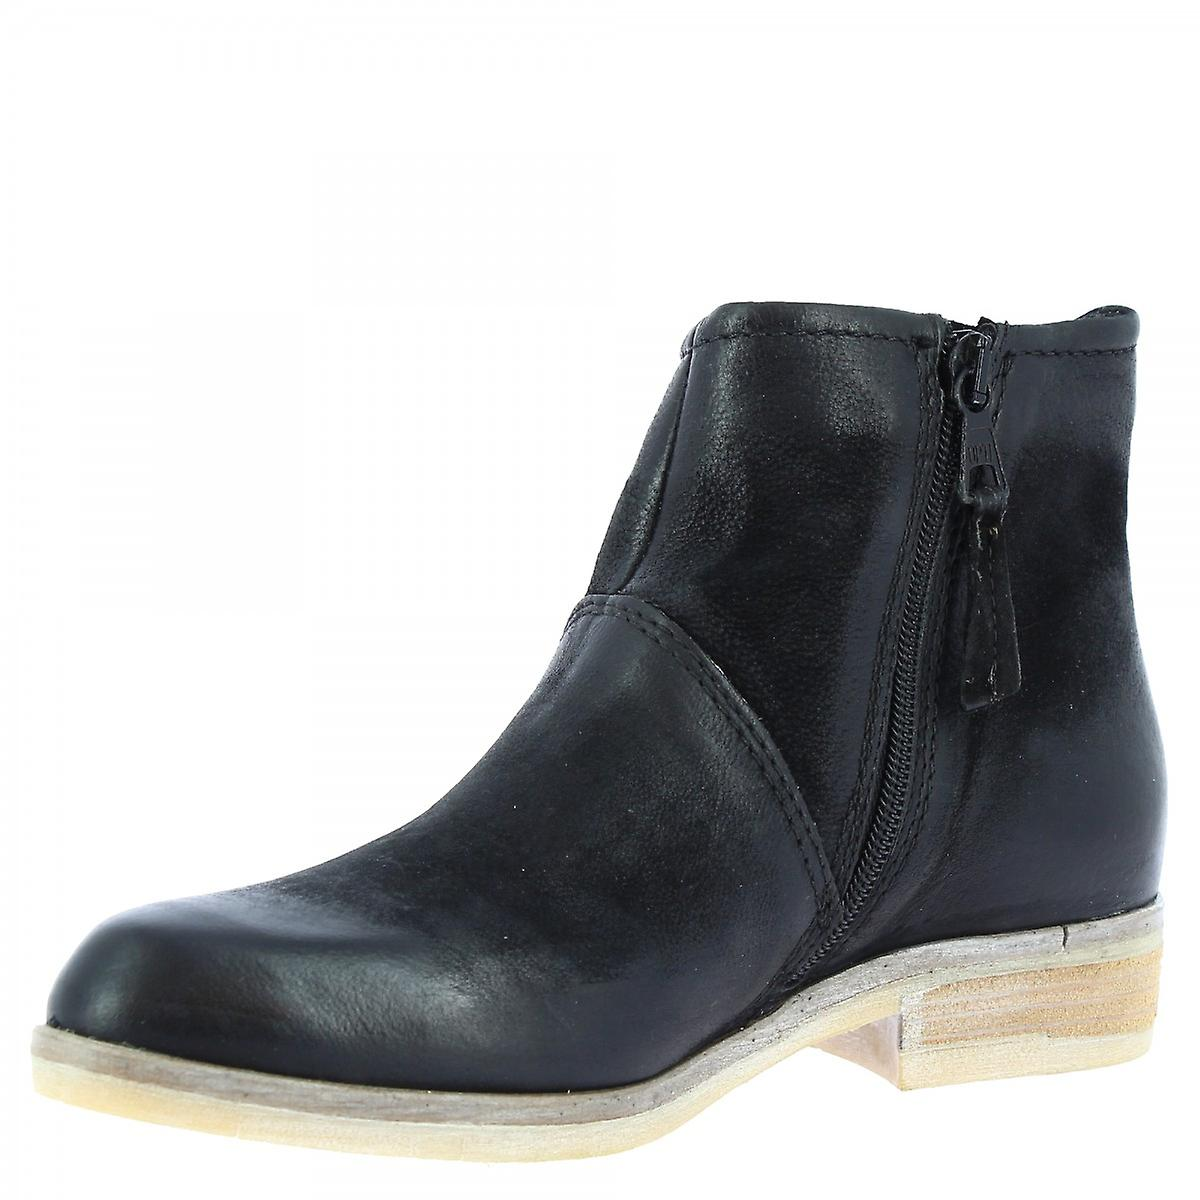 Leonardo Shoes Women's handmade ankle boots black calf leather zip closure